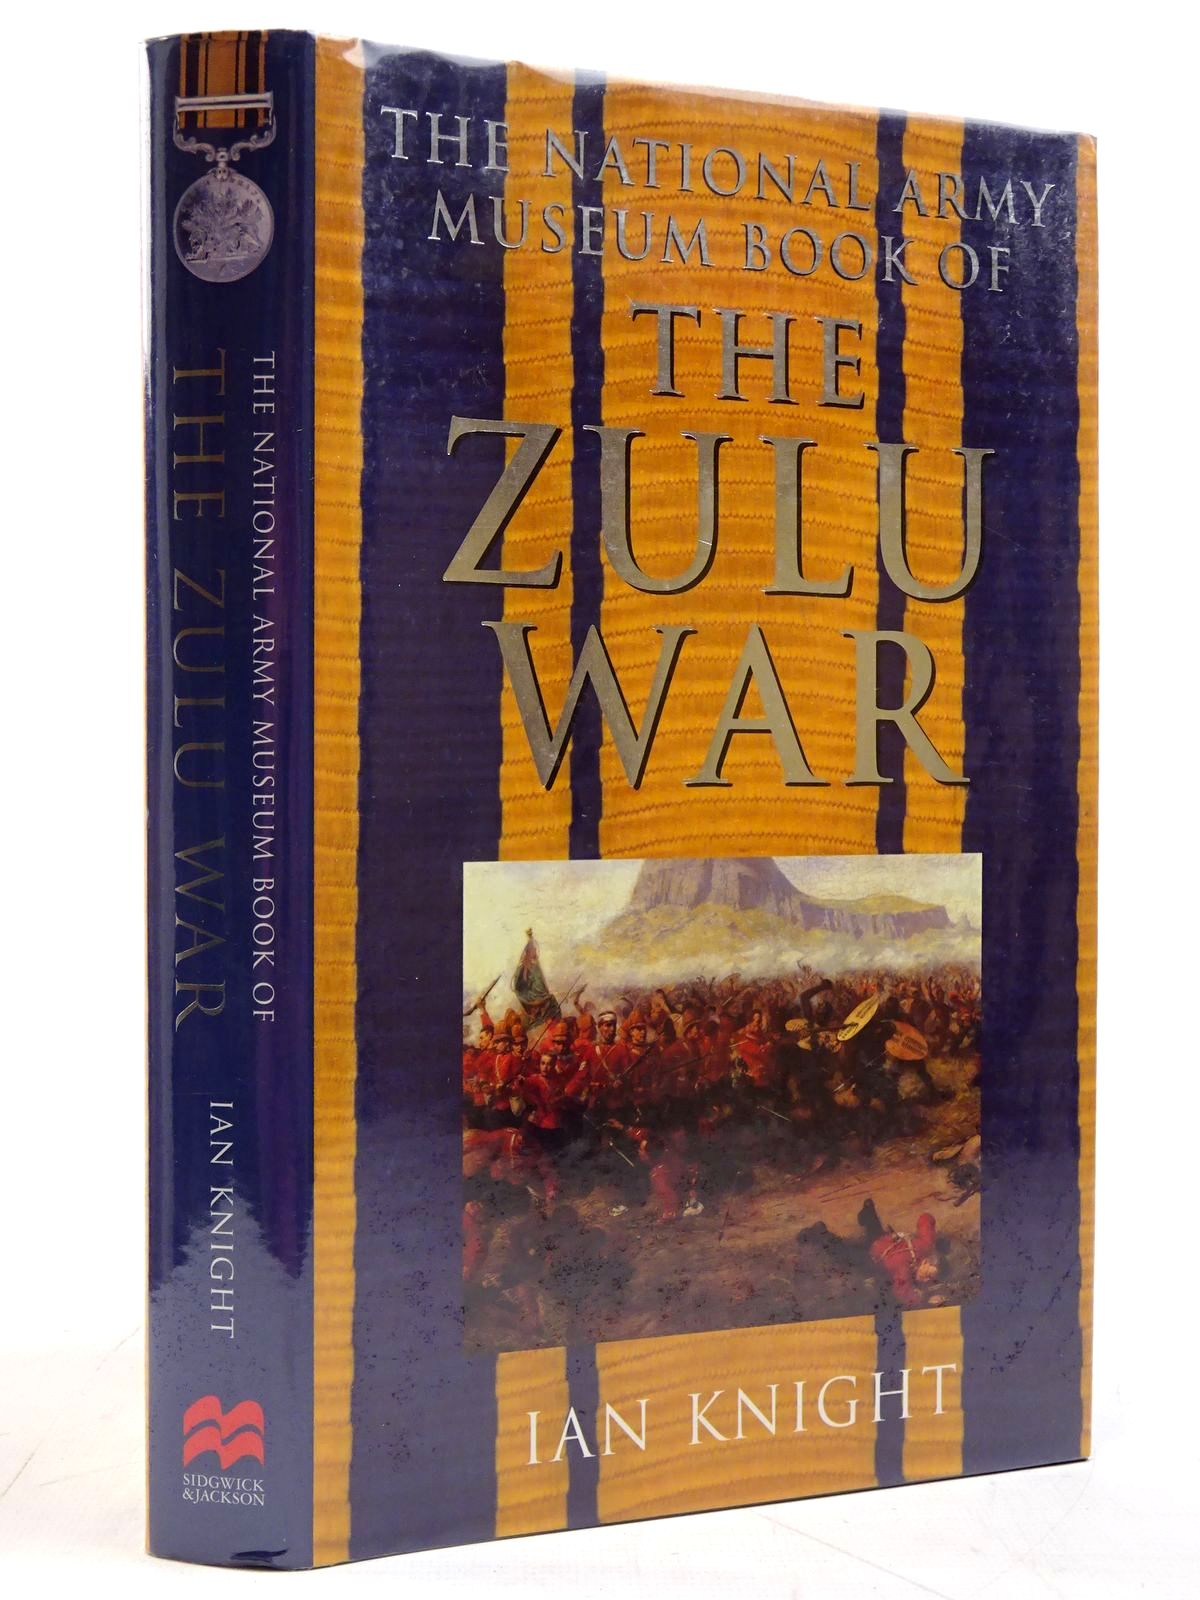 Photo of THE NATIONAL ARMY MUSEUM BOOK OF THE ZULU WAR written by Knight, Ian published by Sidgwick & Jackson (STOCK CODE: 2131428)  for sale by Stella & Rose's Books